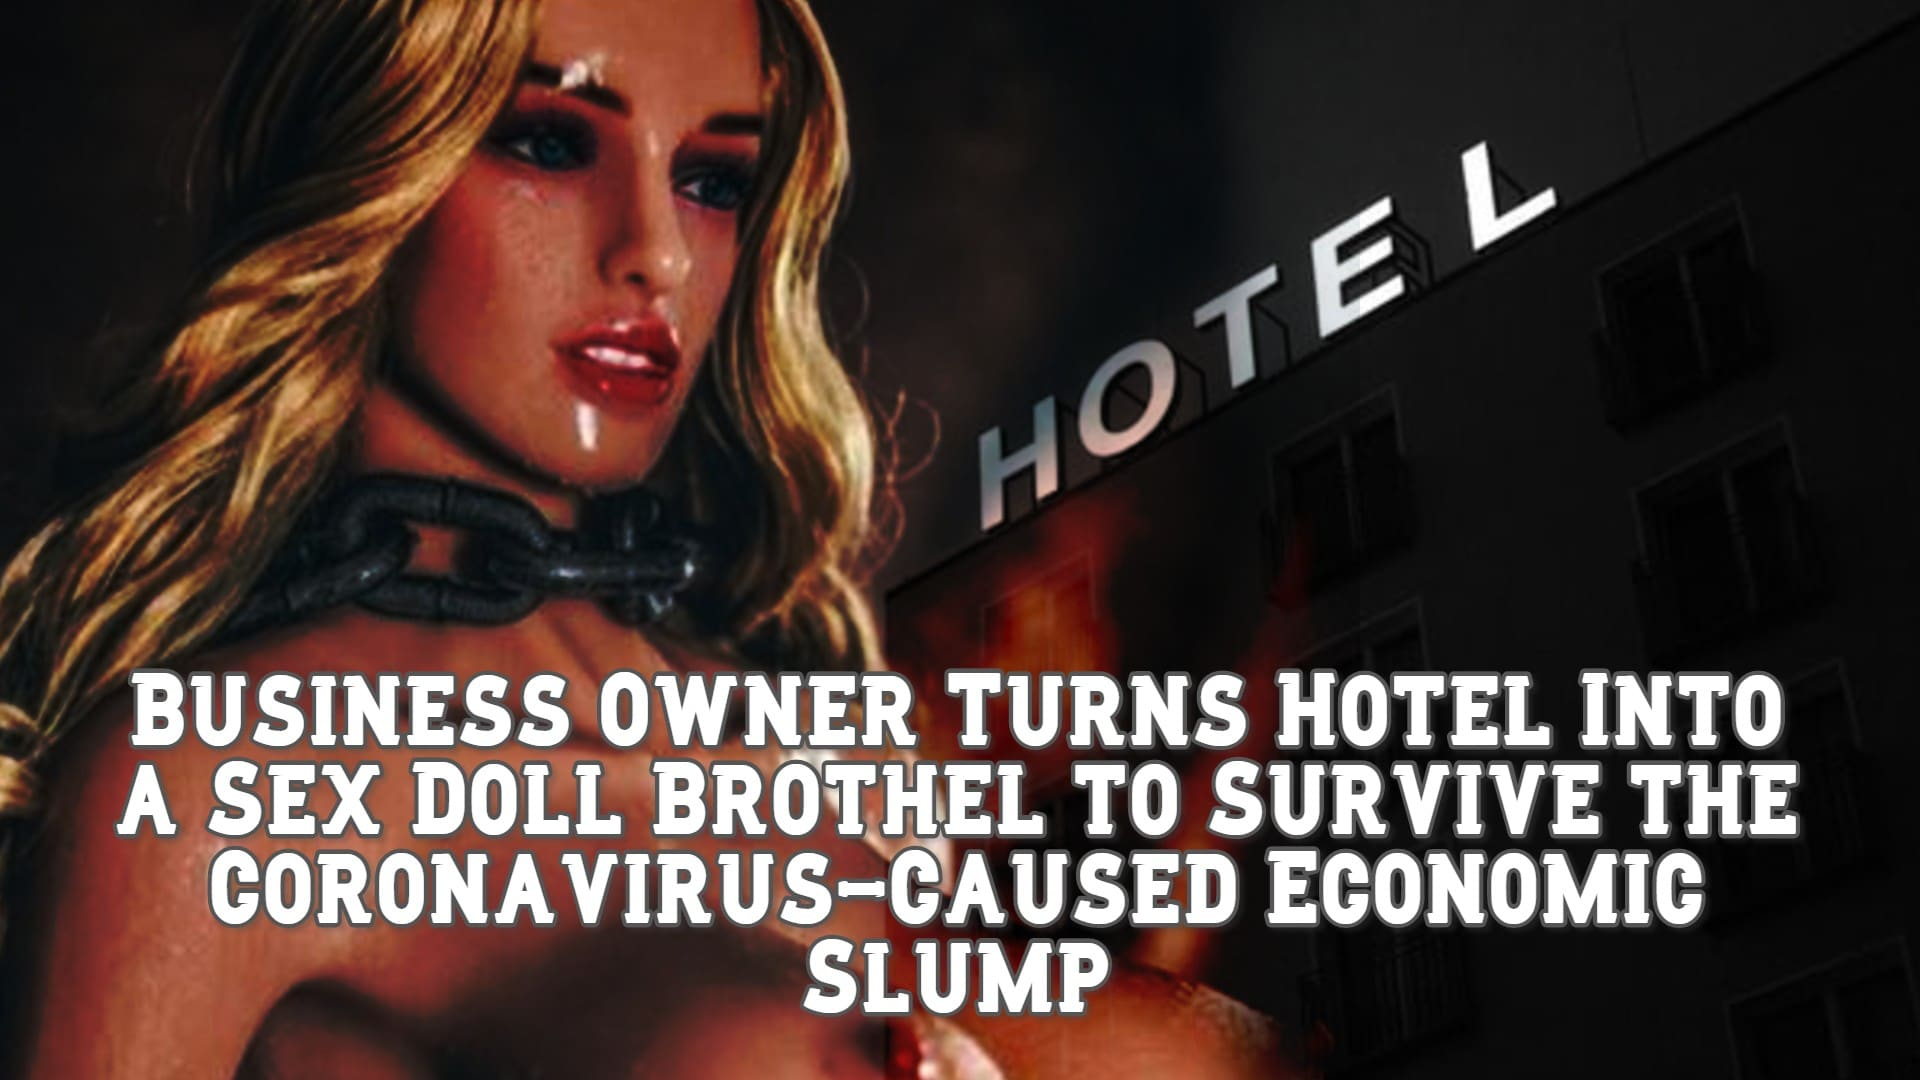 Business Owner Turns Hotel Into a Sex Doll Brothel to Survive the Coronavirus-Caused Economic Slump